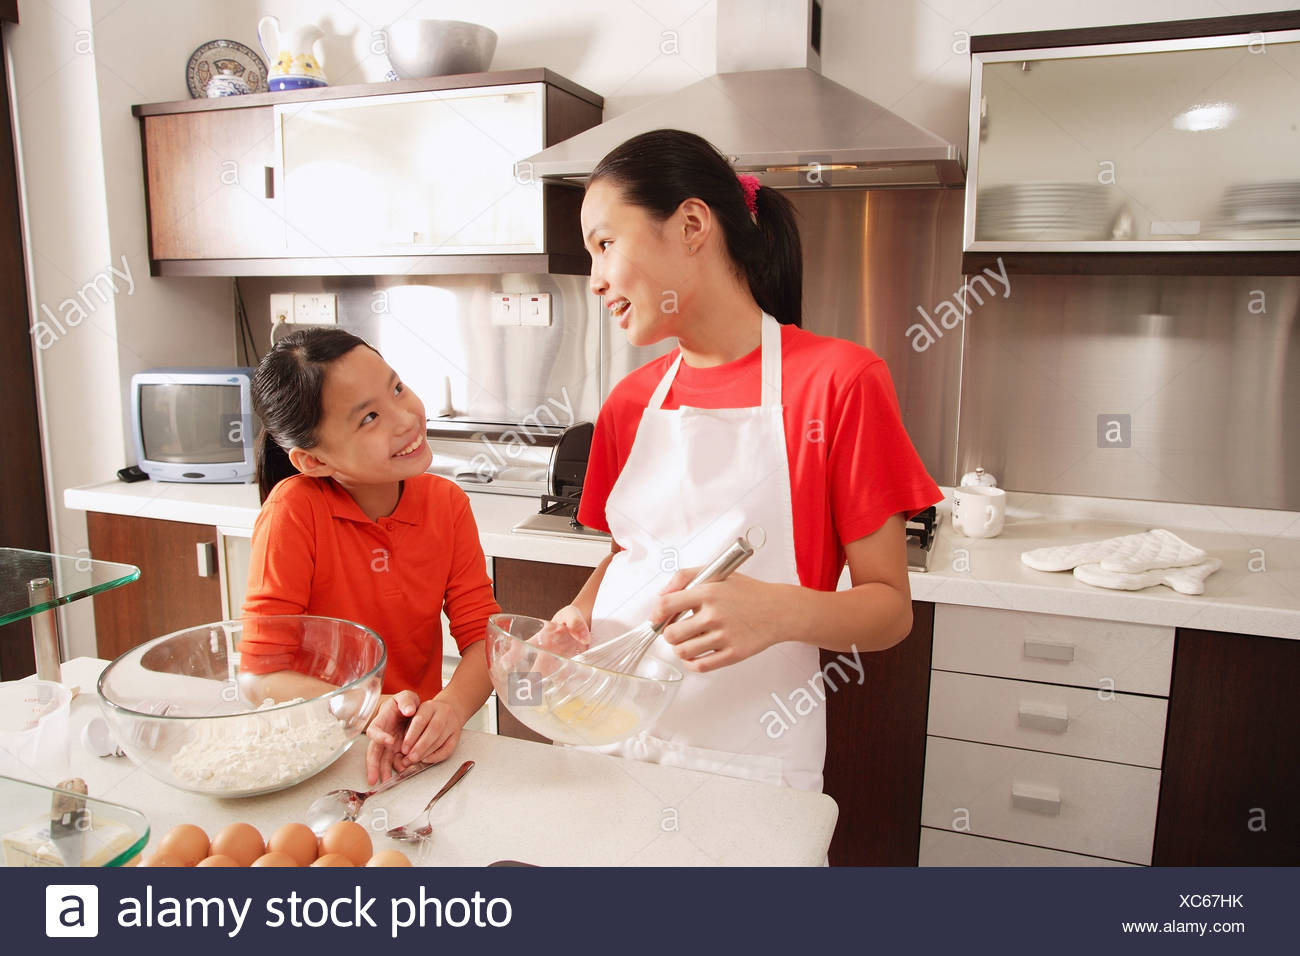 Two sisters baking in kitchen Stock Photo: 282879455 - Alamy